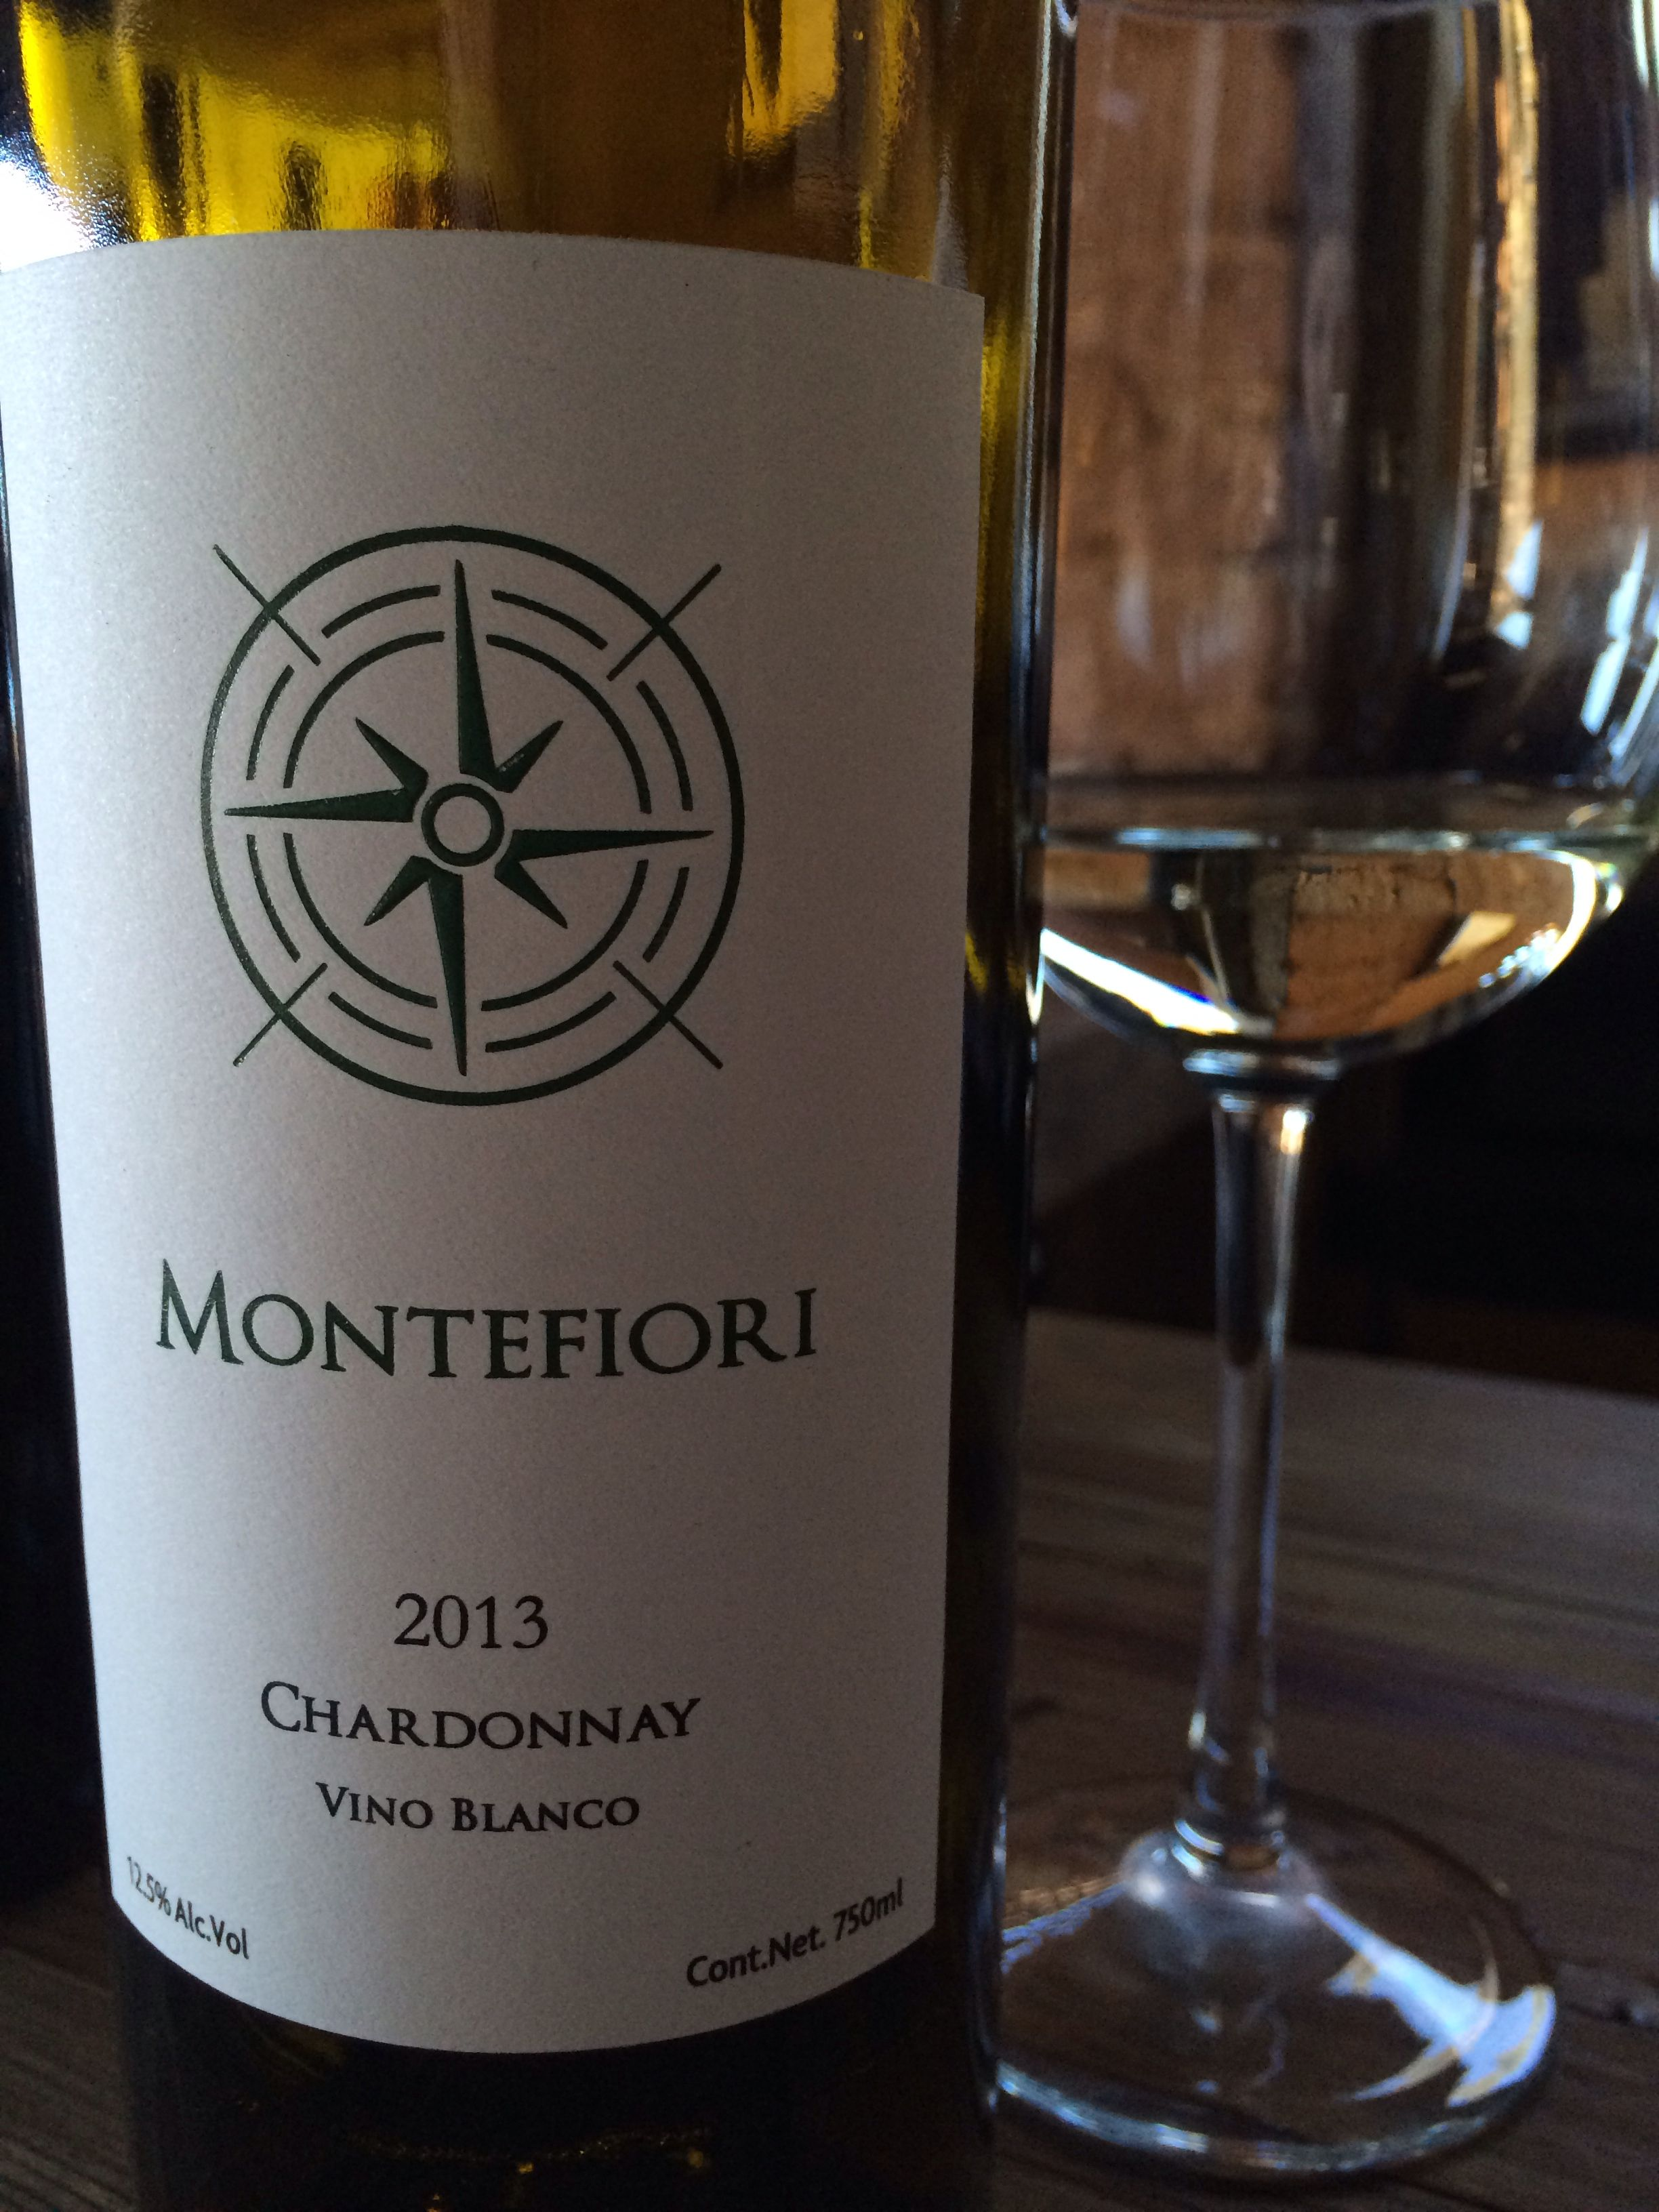 This is one of the best Chardonnays of the baja!